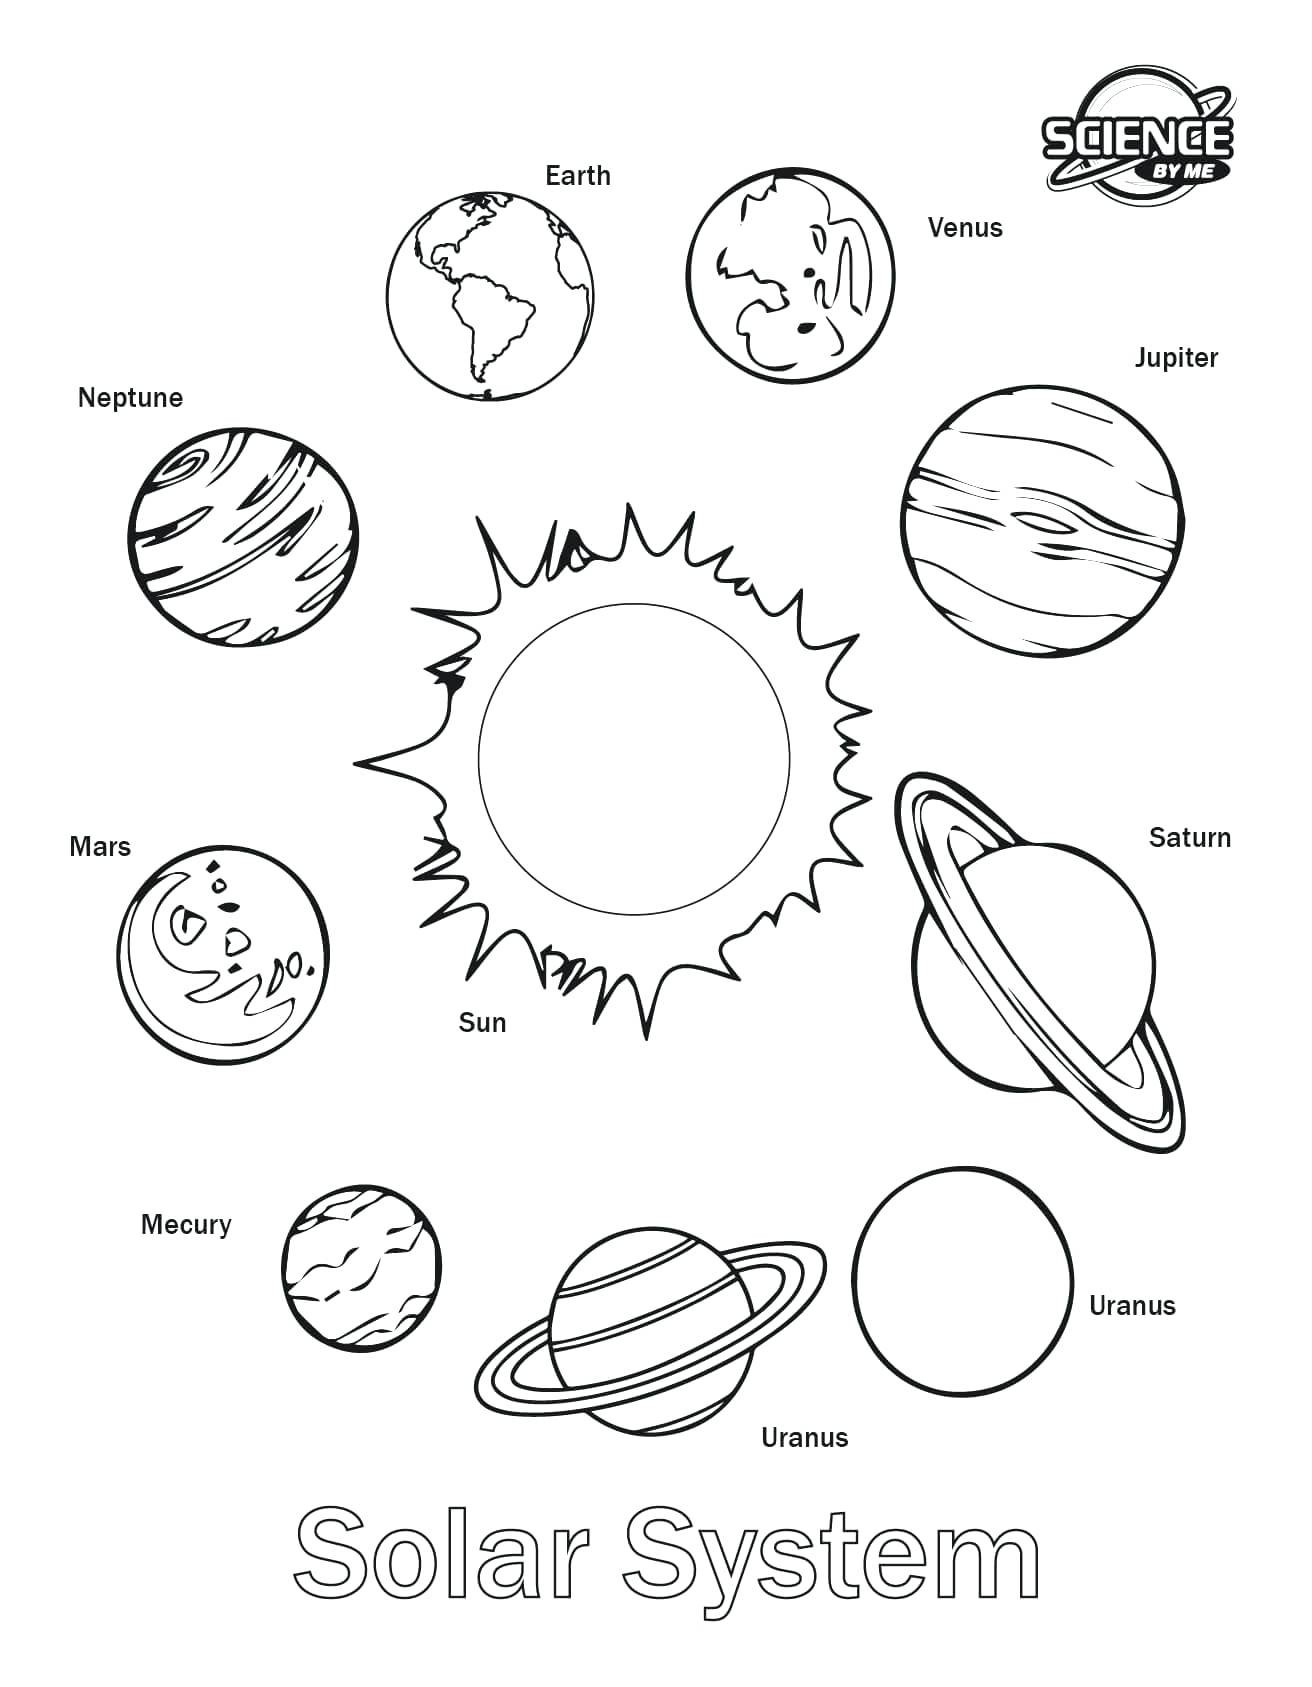 Free 6th Grade Science Worksheets Fun Learning Games for Kids David Coloring Pages Bible 3rd